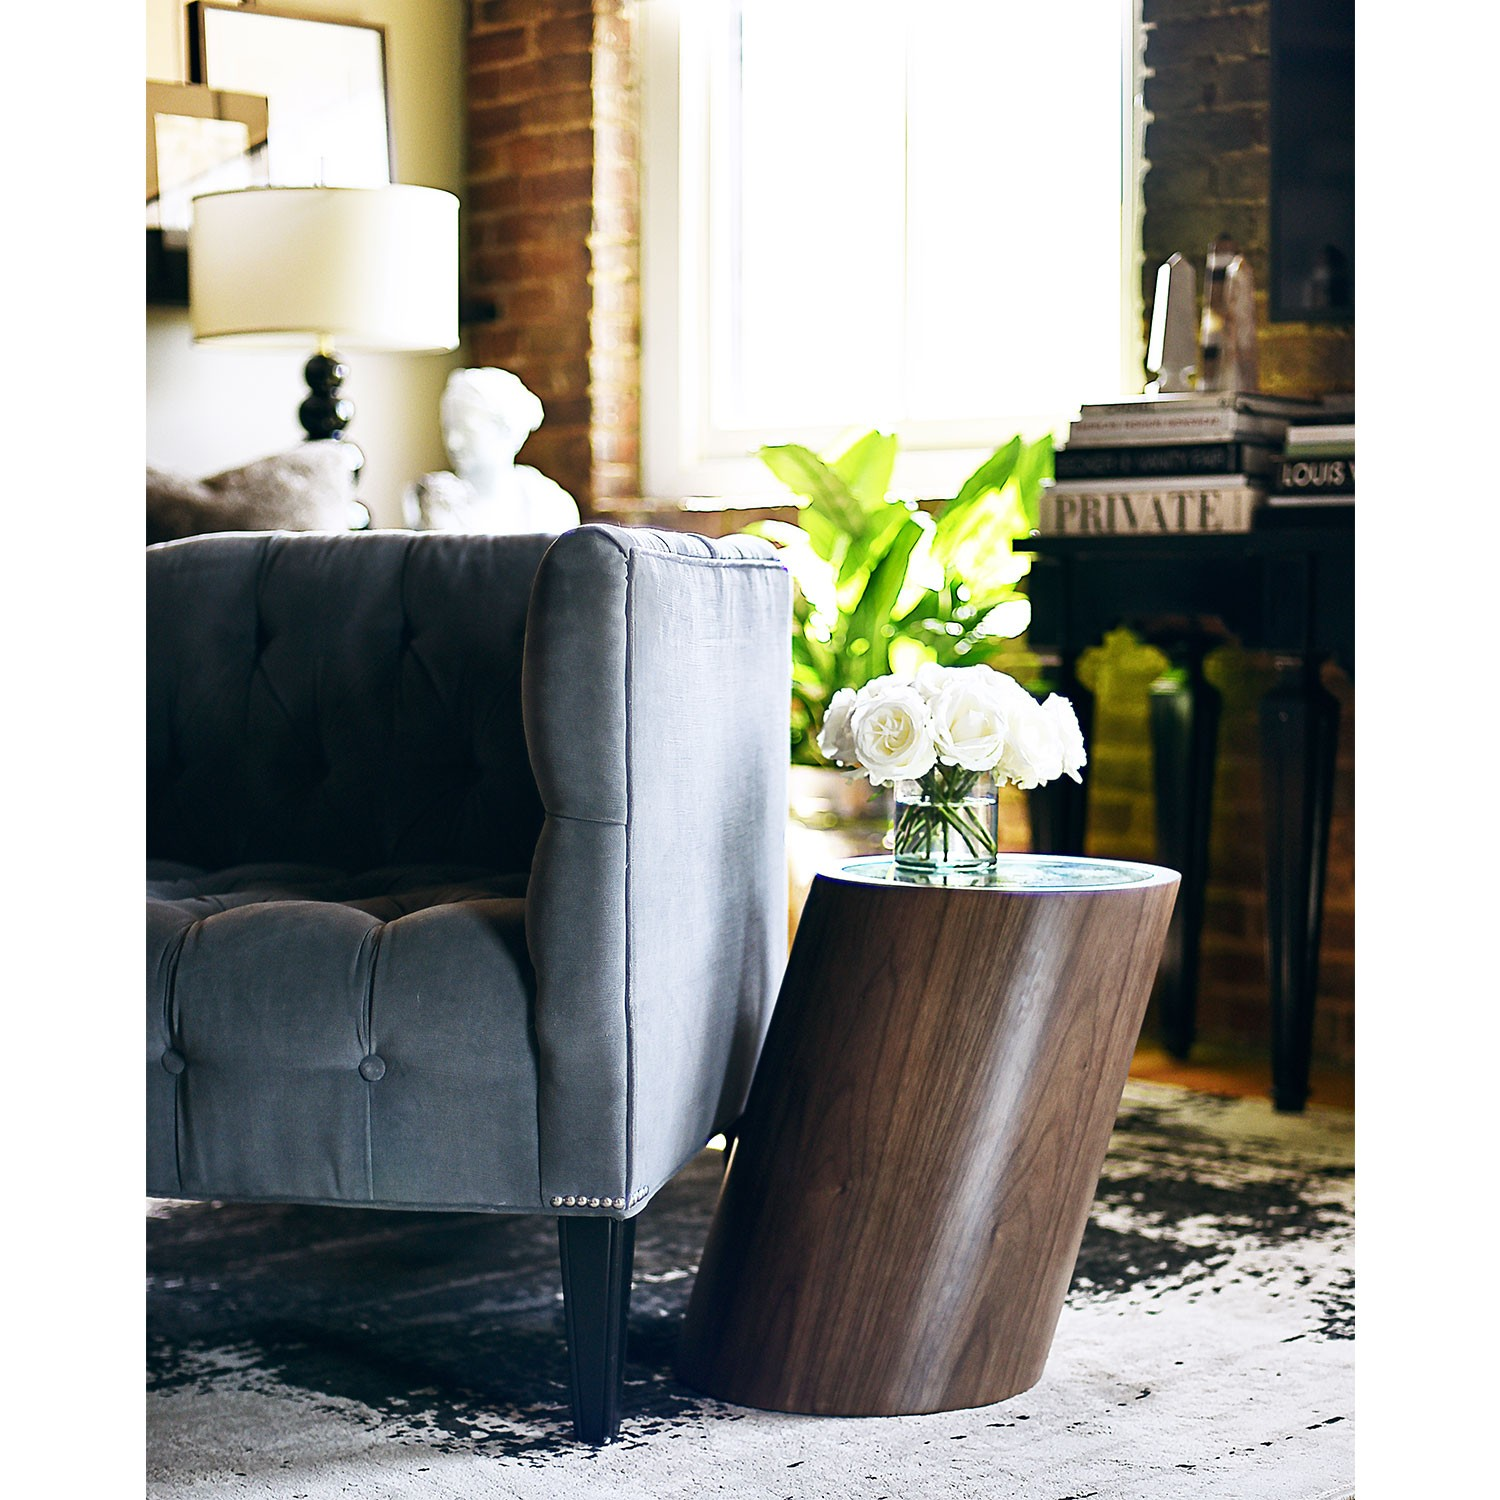 zane cylinder side table symmetric walnut jkm home accent black full size bunkie board console kmart bedside modern and contemporary furniture pedestal ikea rustic round coffee